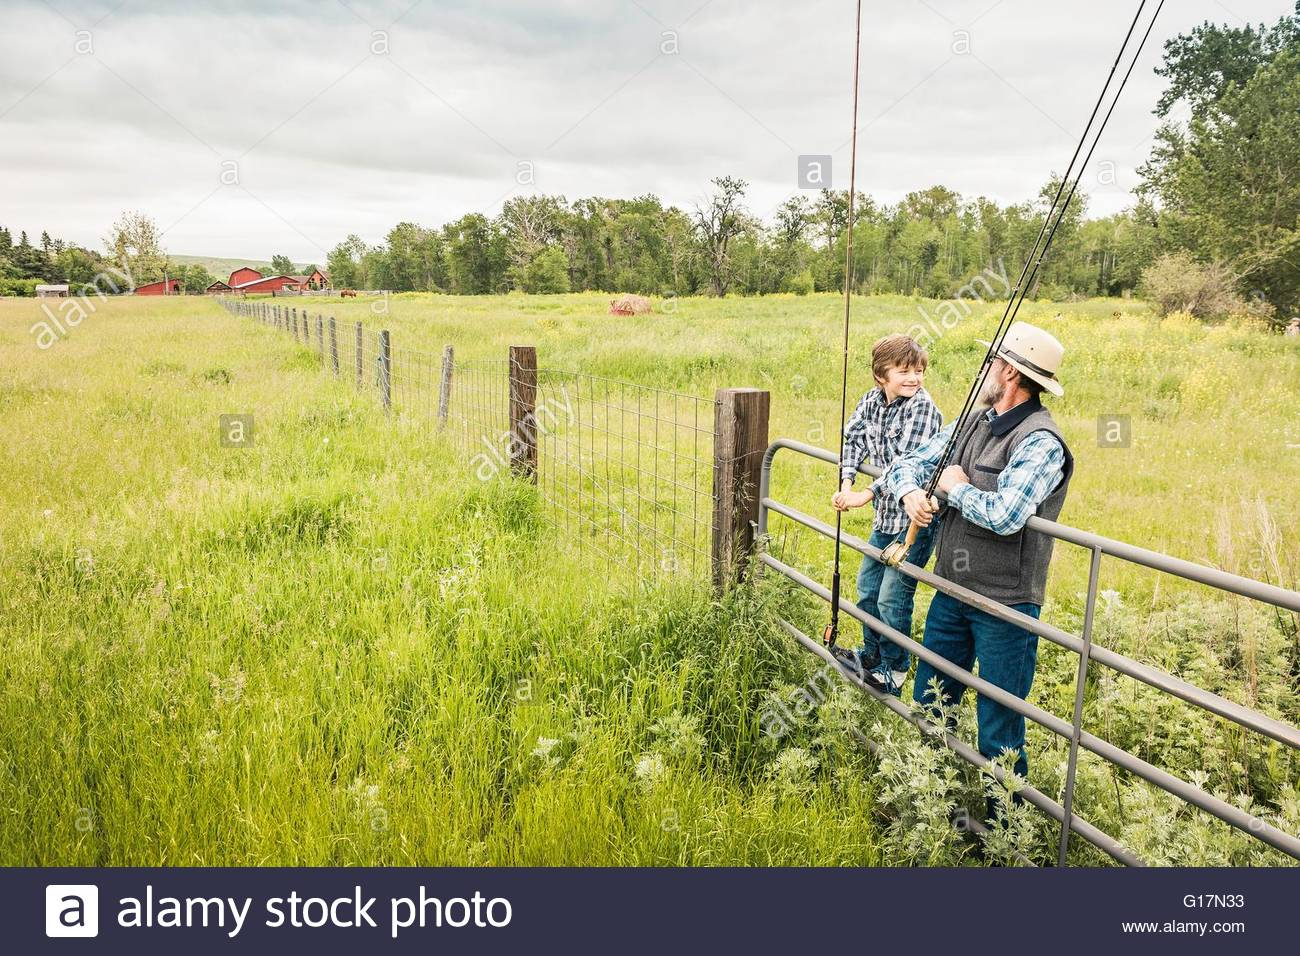 Man and boy holding fishing rods resting on gate in field - Stock Image